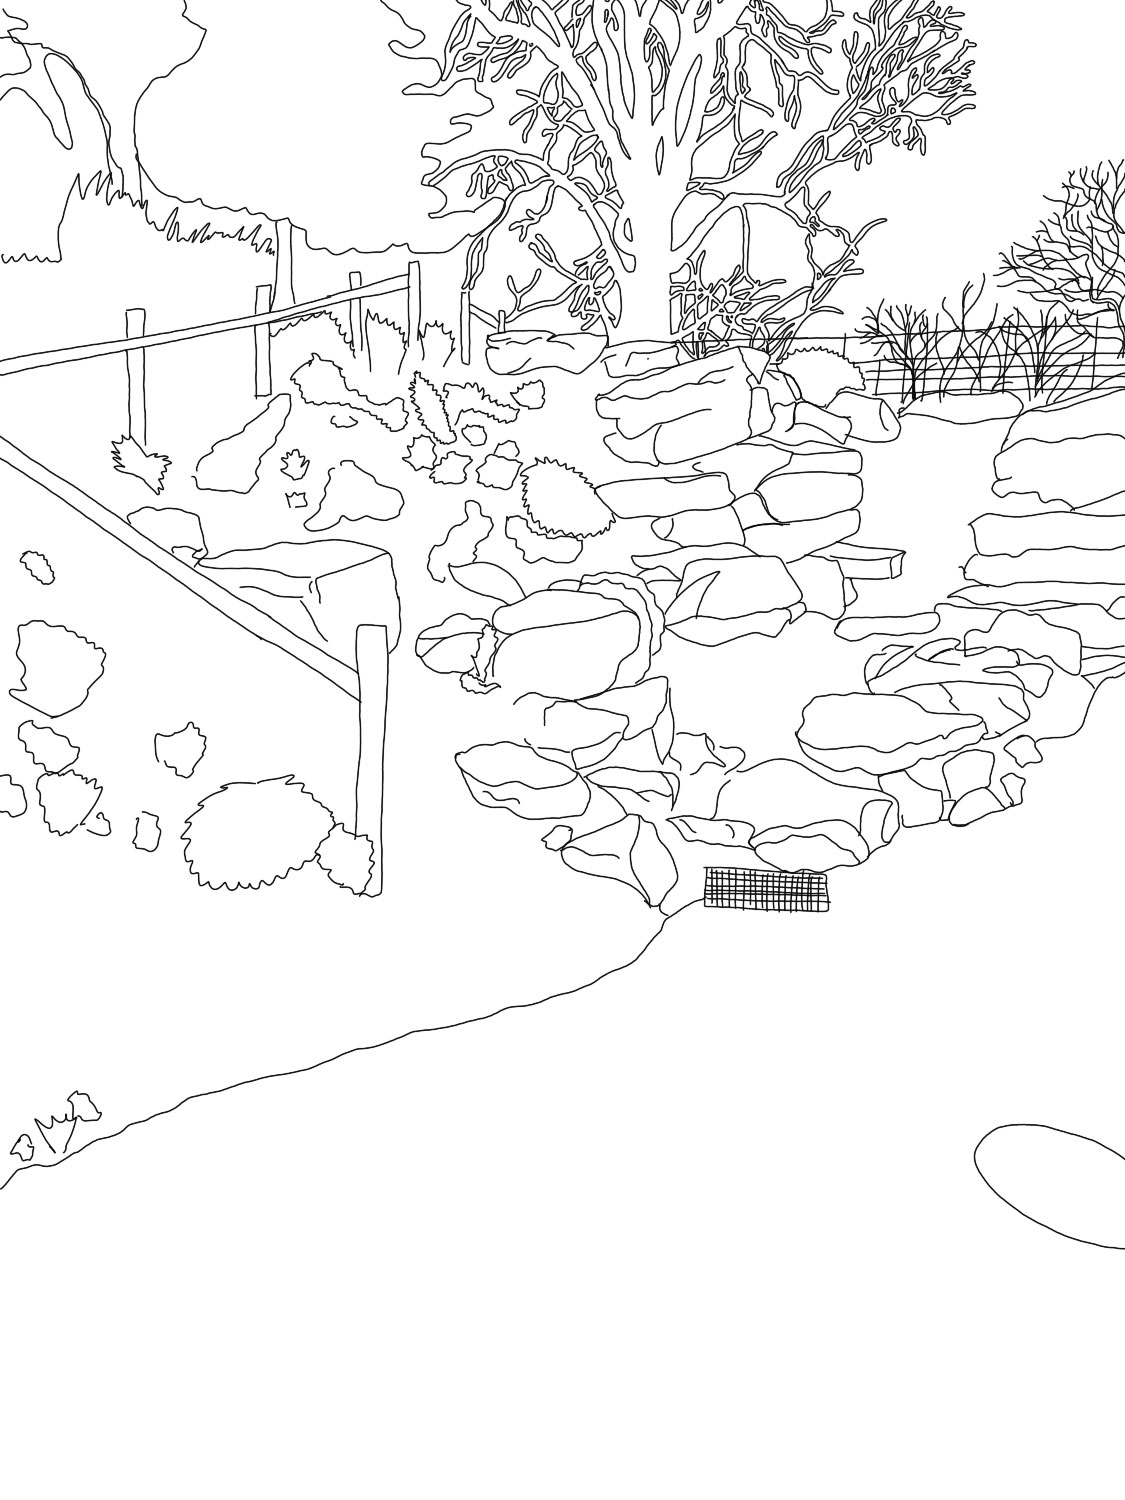 Moor Park, January 2021 (outline) Image